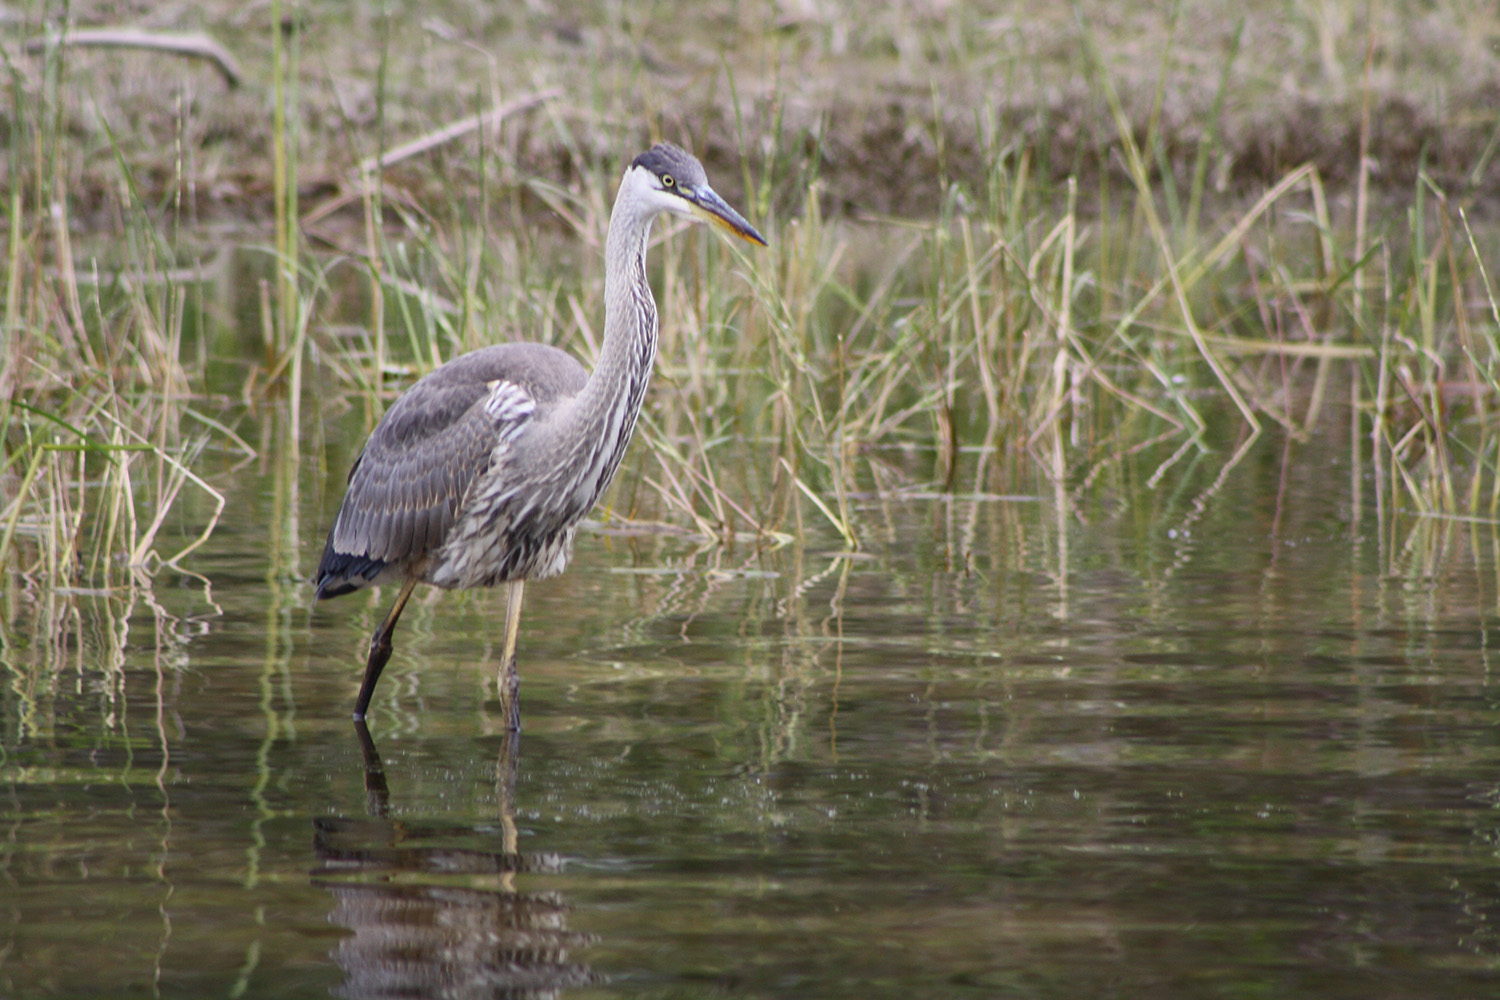 Like any good fisherman, the heron is quiet and still as it wades in the Songo River in Naples, where Raymond's Bruce Small observed from a boat.